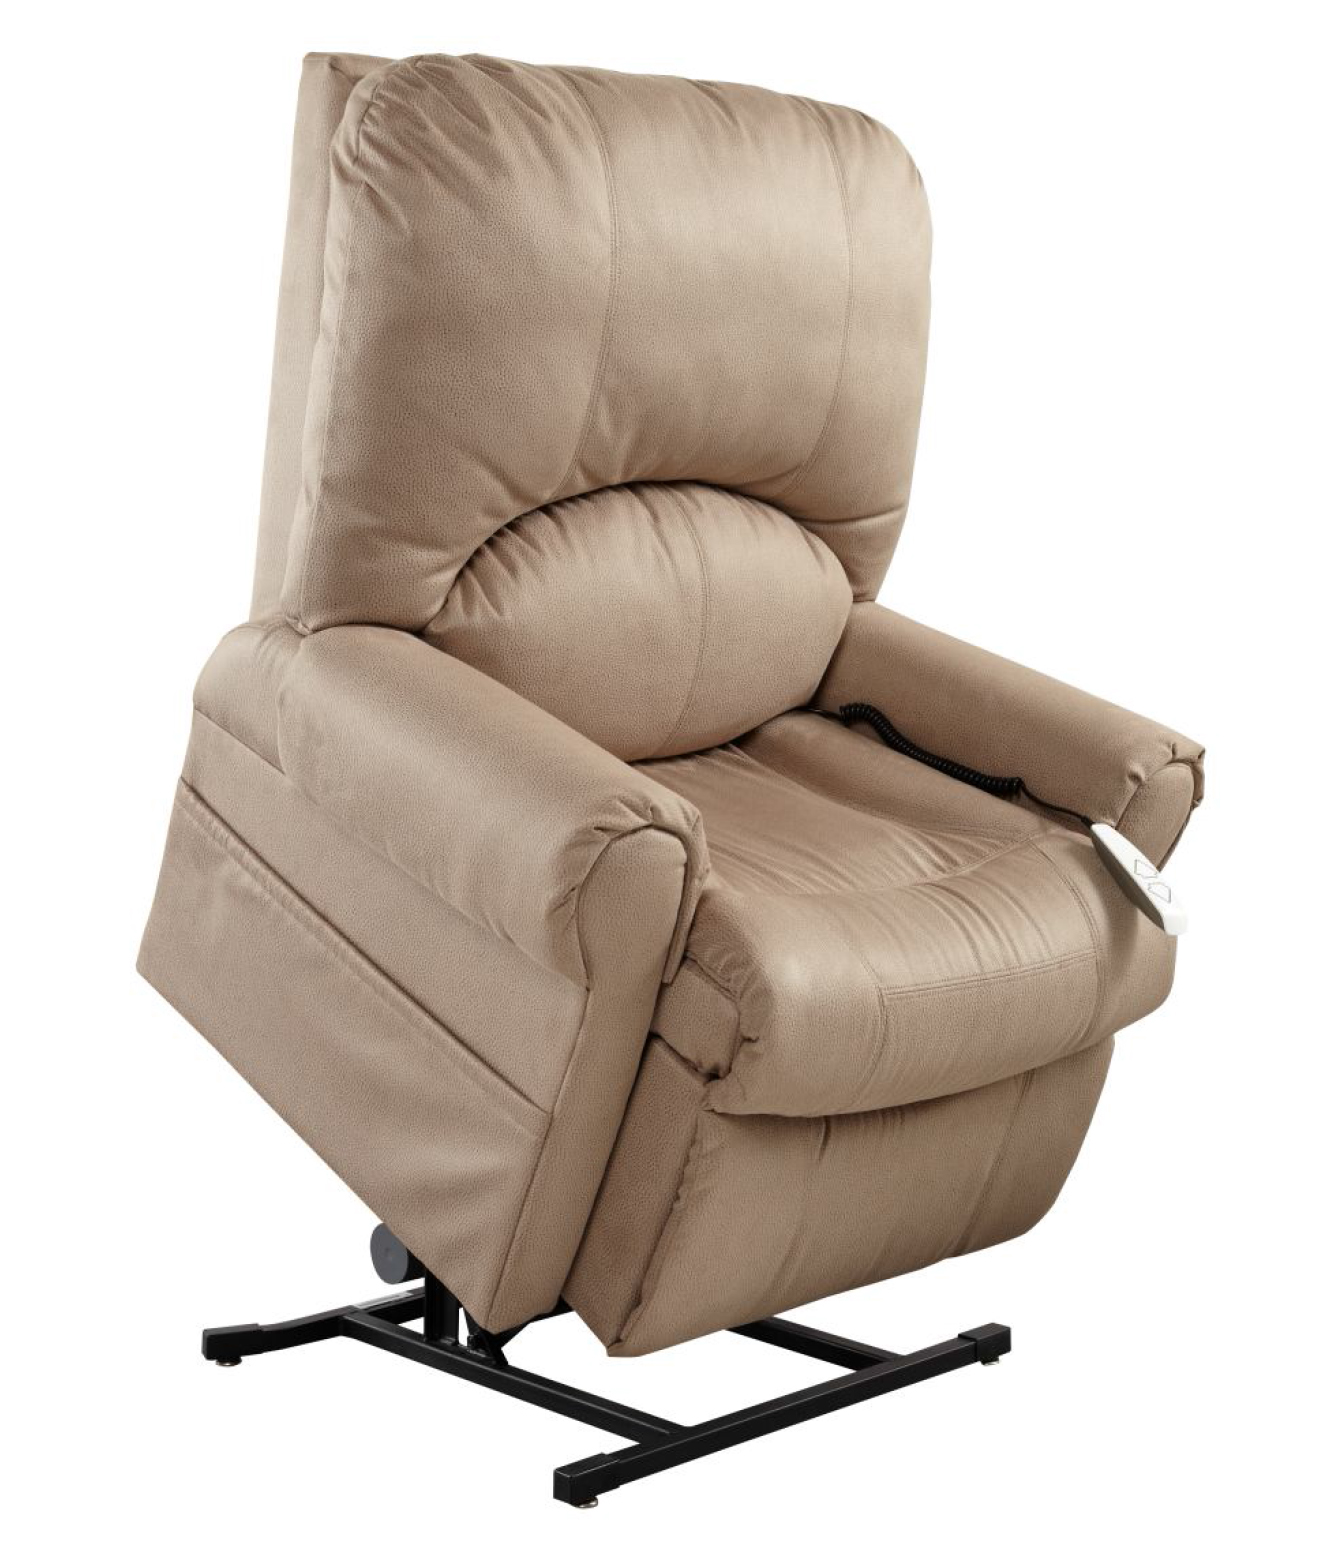 Mega Motion AS-6001 Torch Electric Power Recline Easy Comfort Lift Chair Recliner  sc 1 st  BACKSTORE.COM & AS-6001 Torch Electric Power Recliner Lift Chair by Mega Motion ...